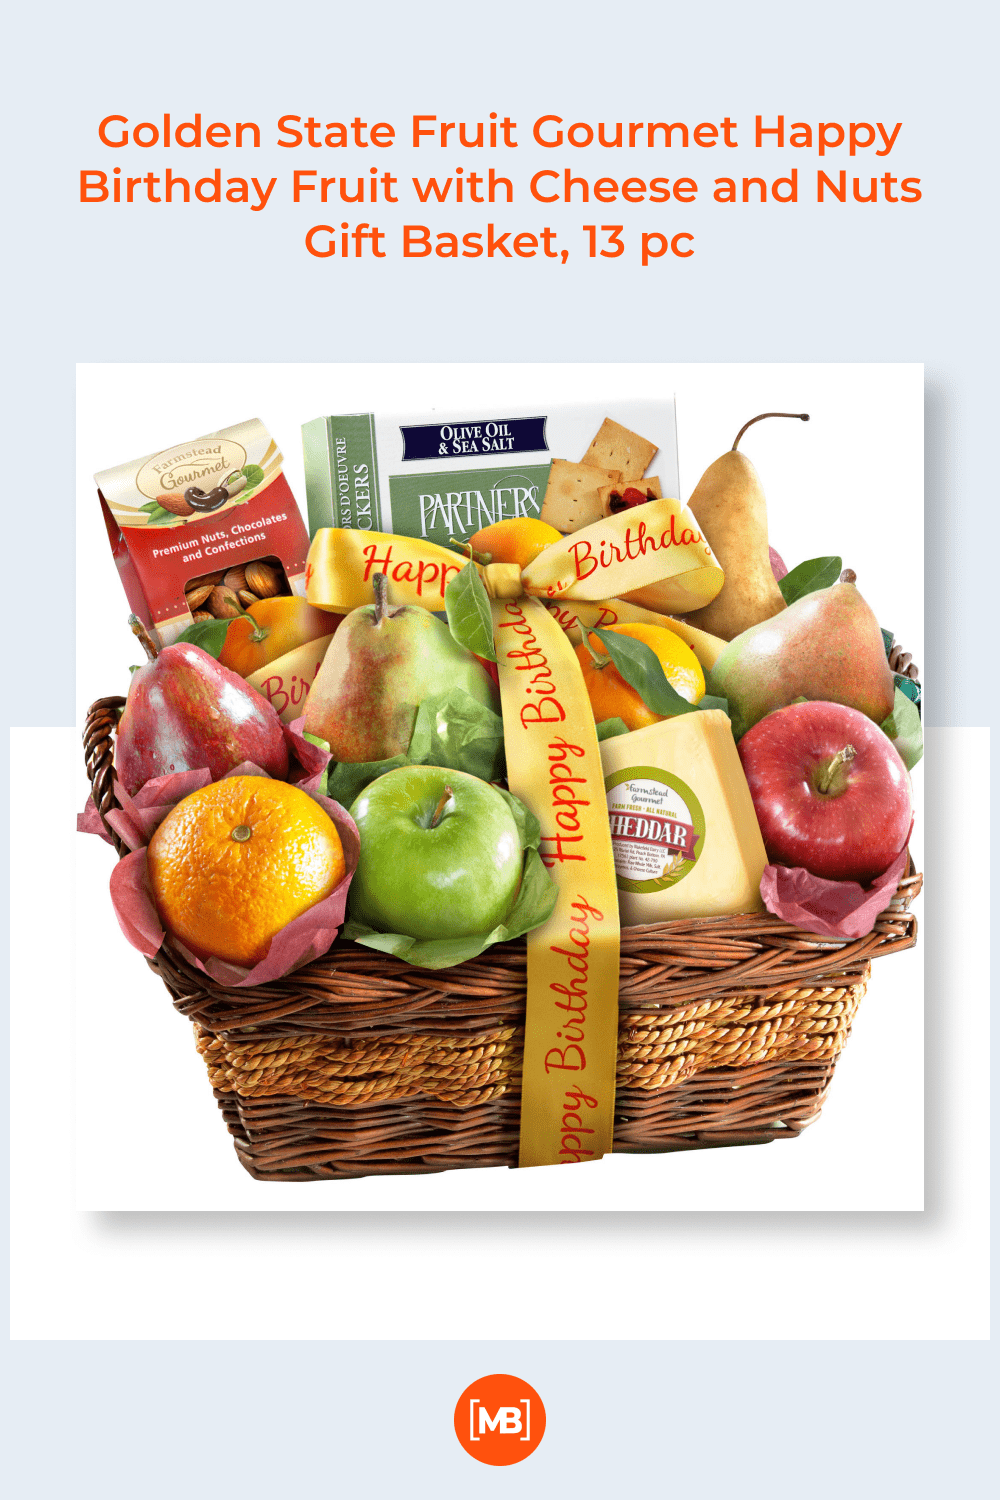 A large basket with all sorts of goodies. There are products for everyone here.